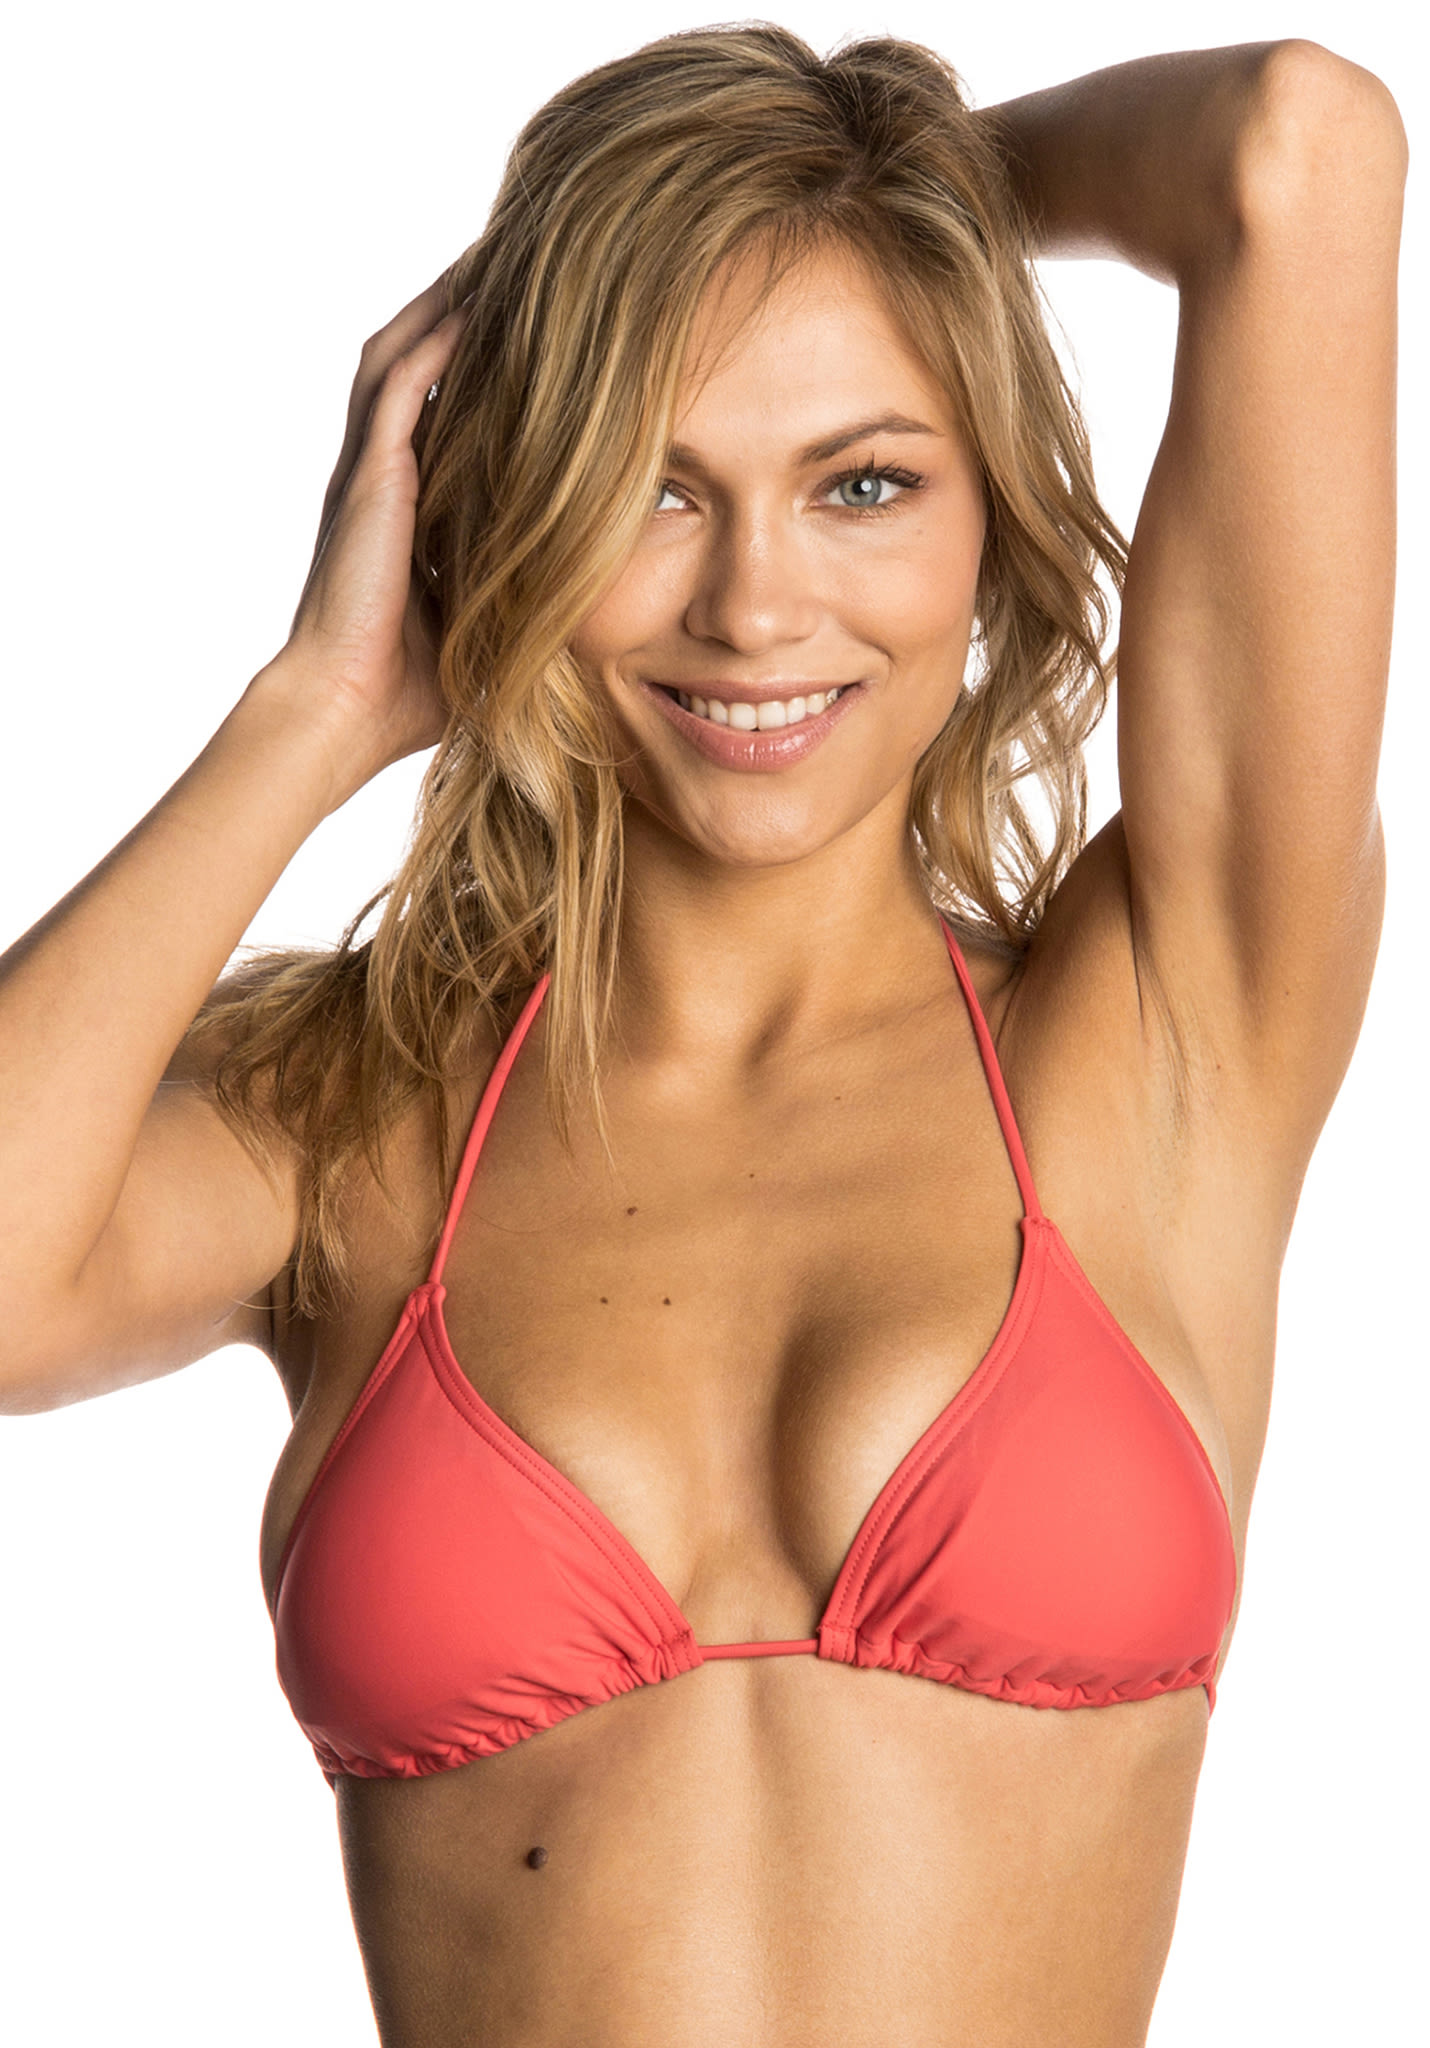 Rip Curl Classic Surf Tri - Bikini Top for Women - Red - Planet Sports 8a638fe2e